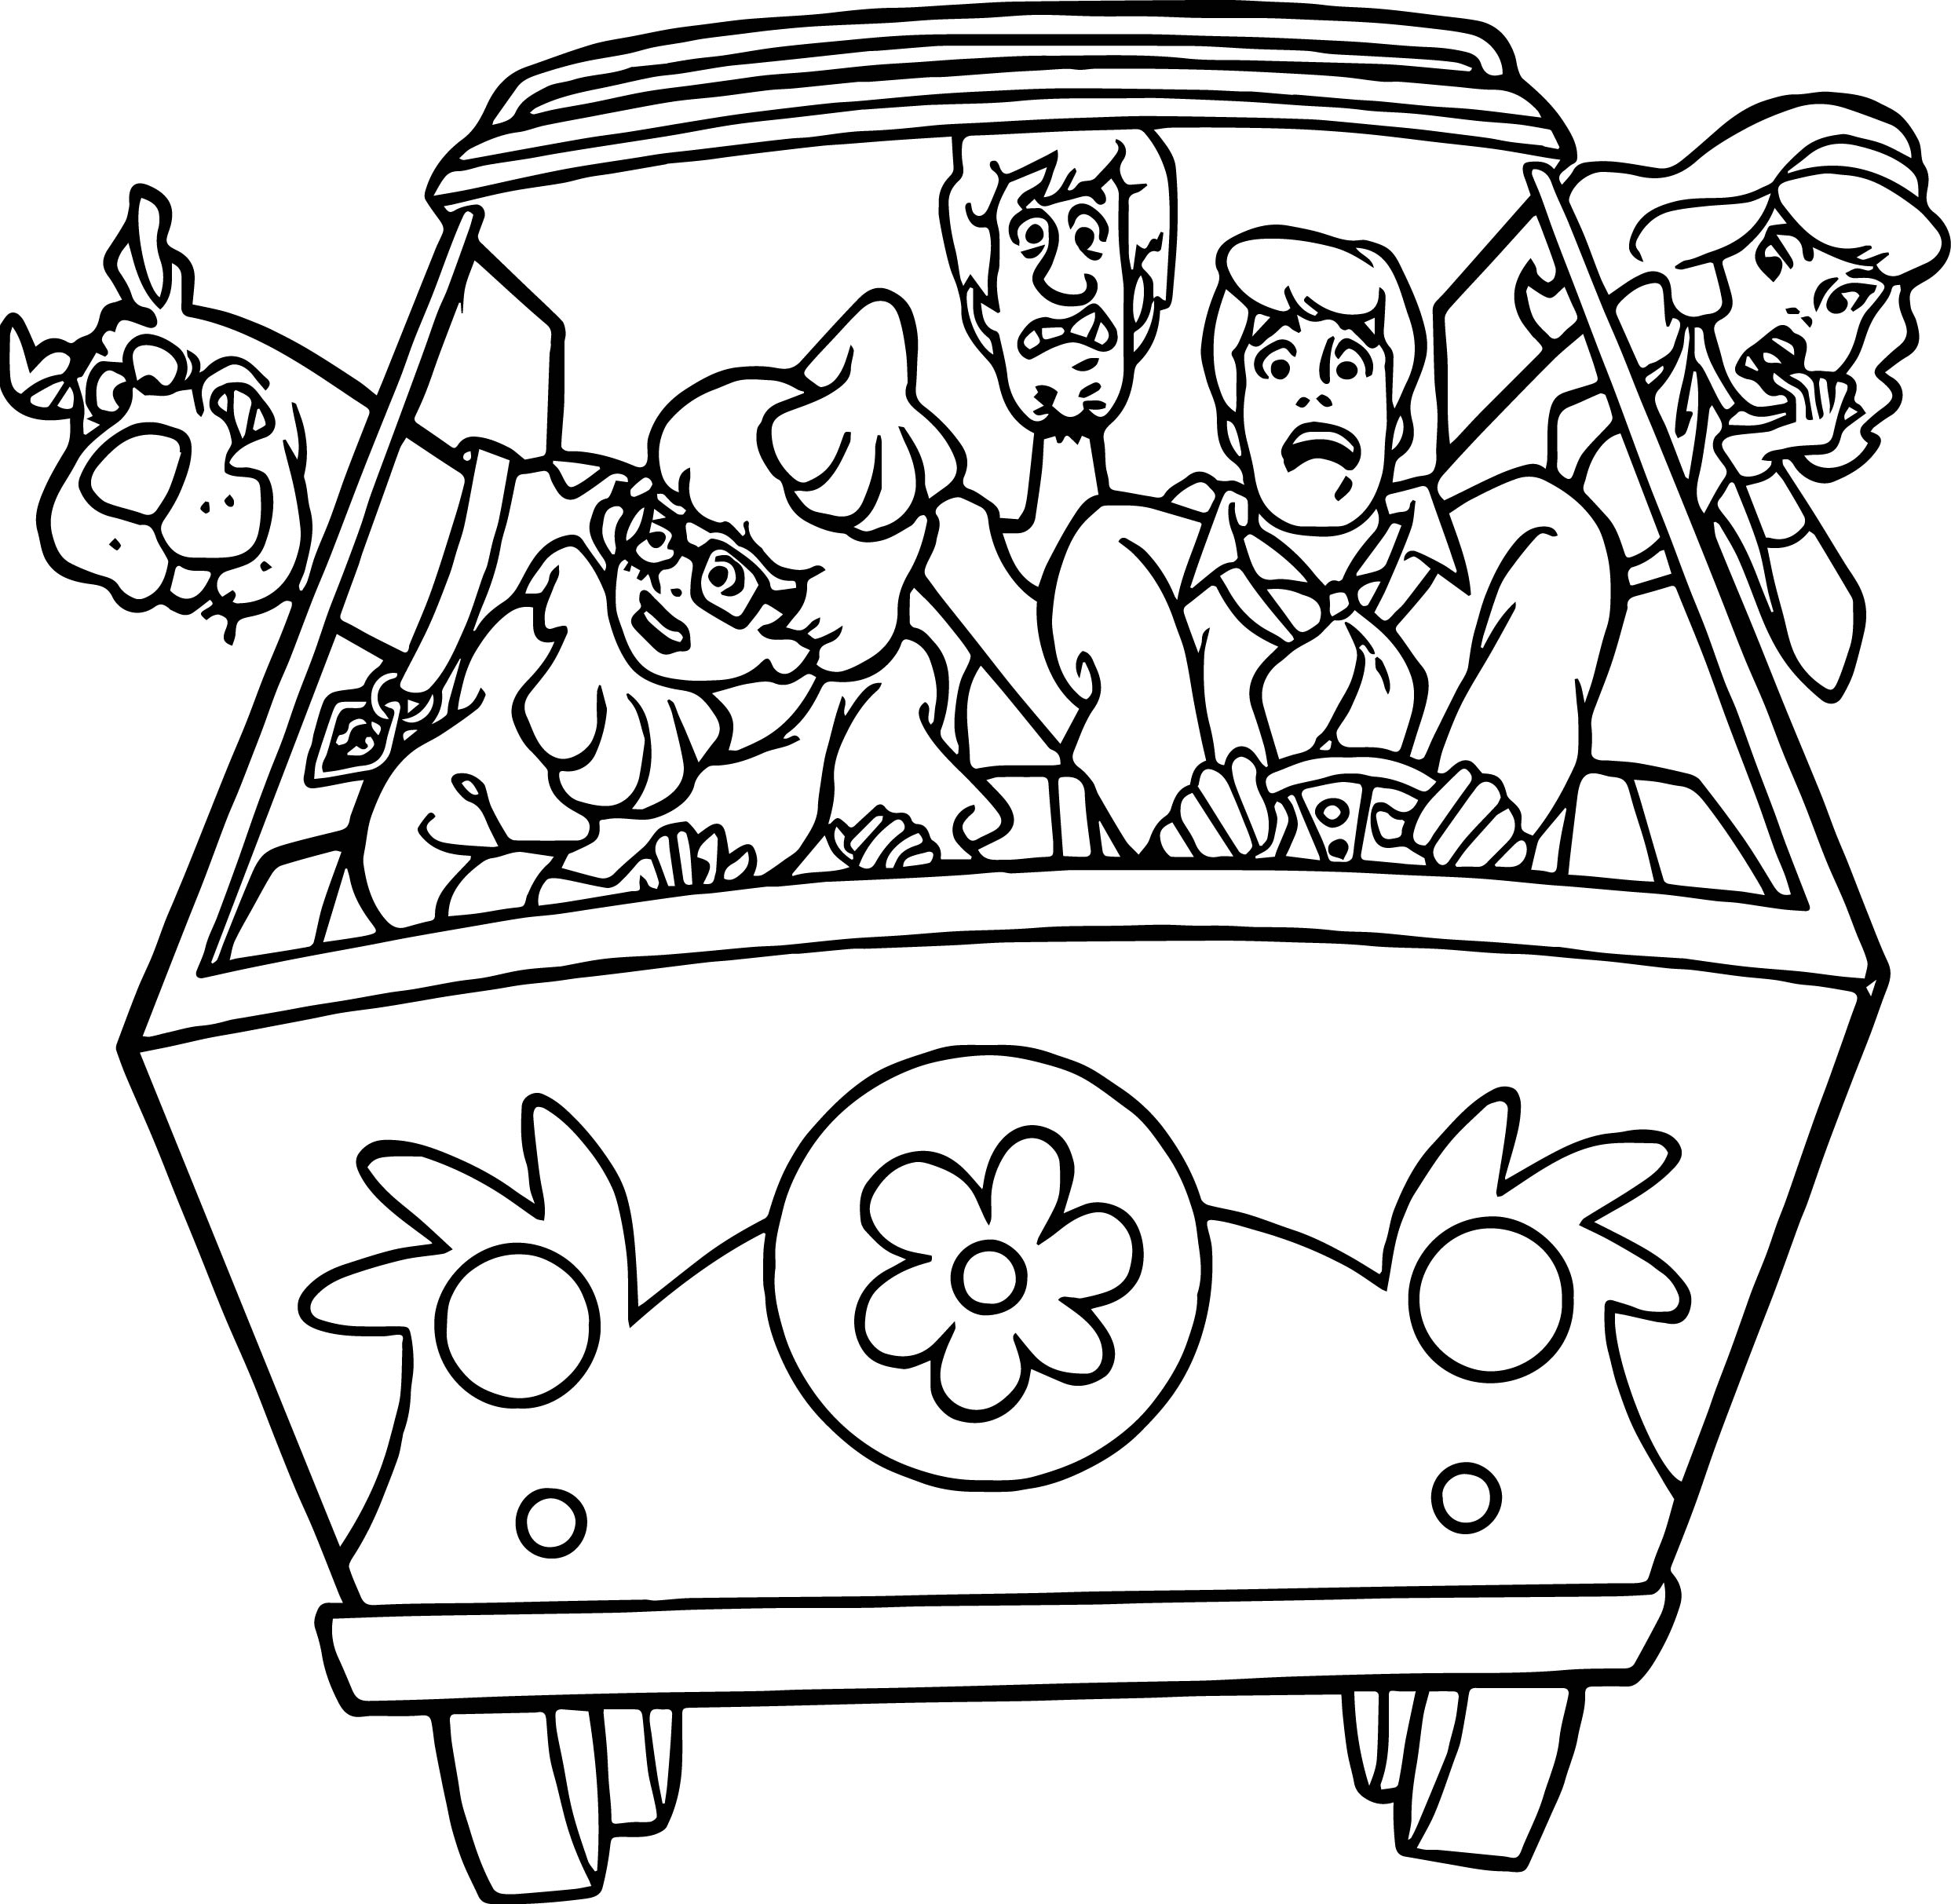 fast car scooby doo scream coloring page wecoloringpage